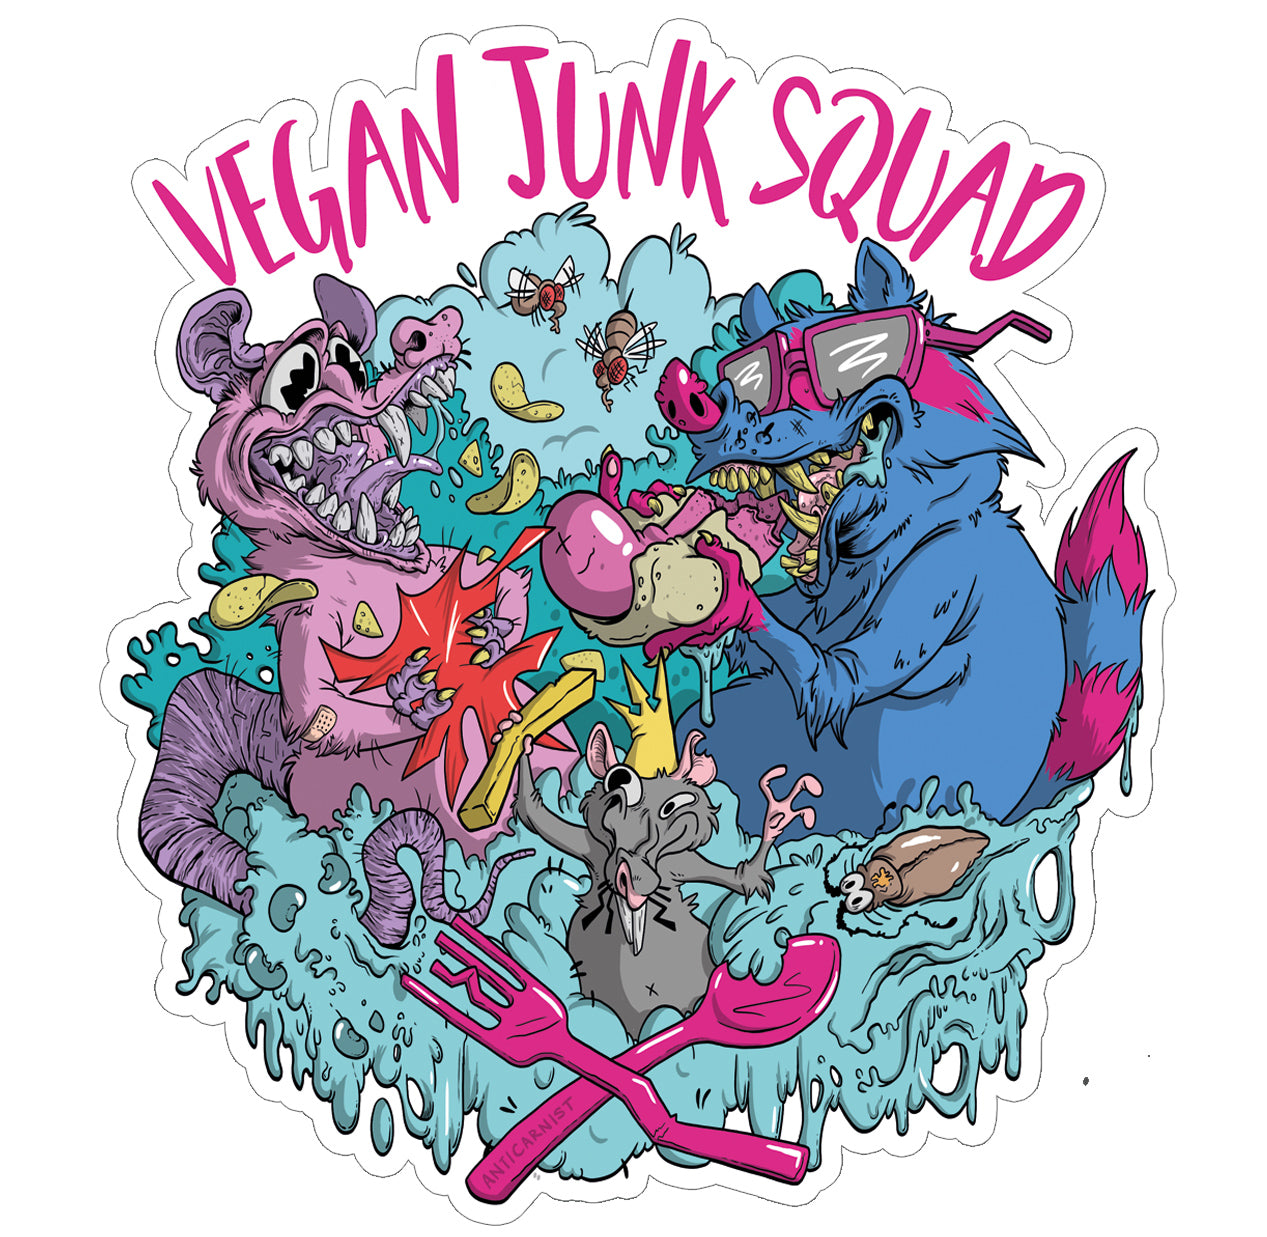 'Vegan Junk Squad' Vinyl Sticker